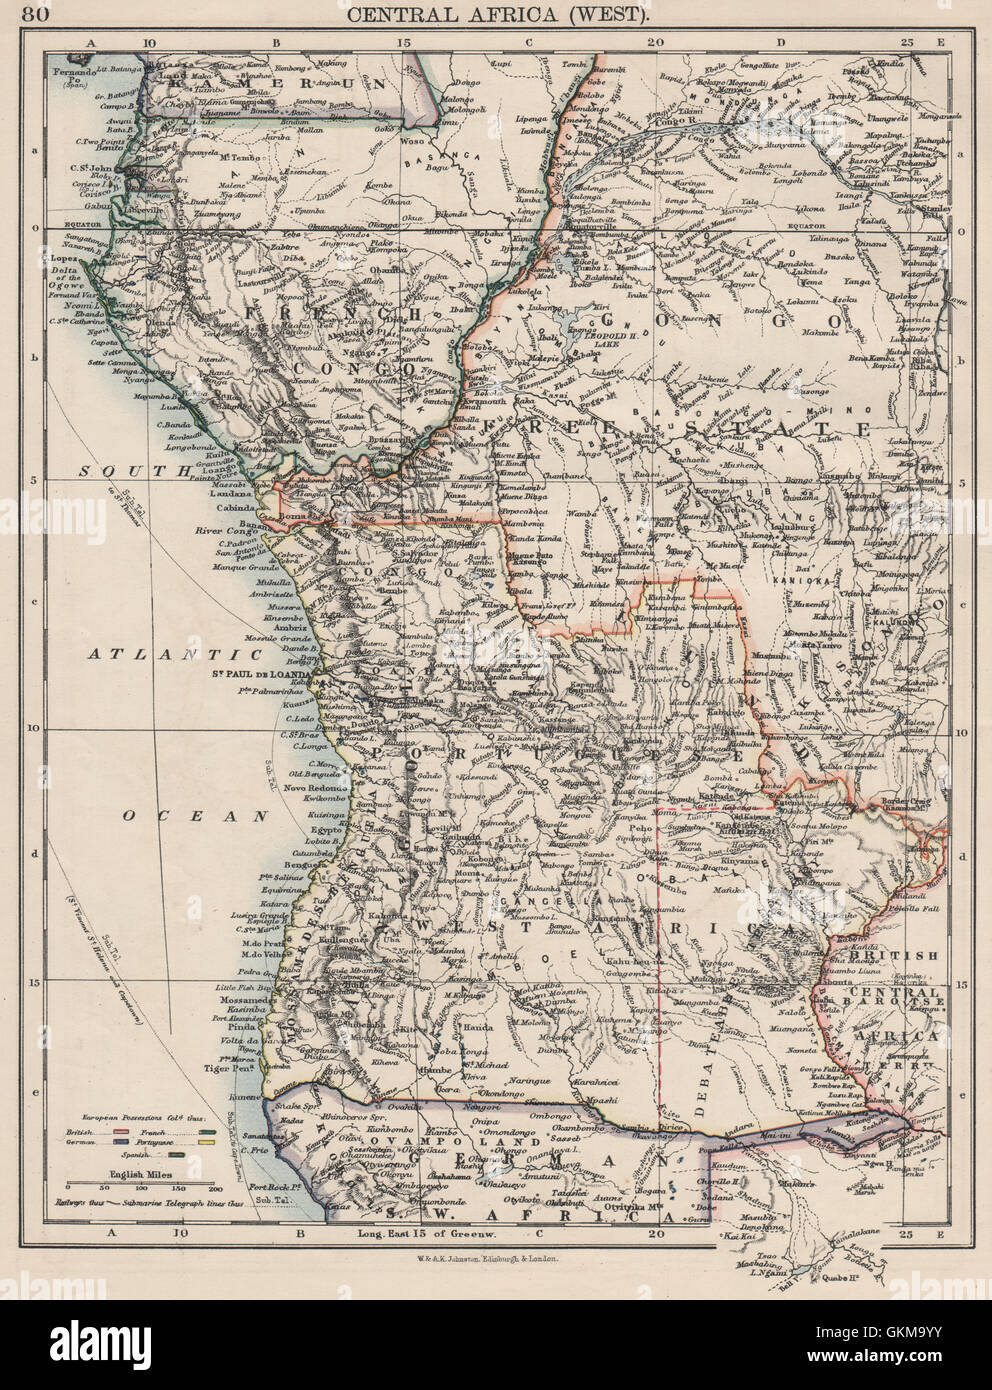 Colonial Central Africa French Congo Free State Portuguese West Af